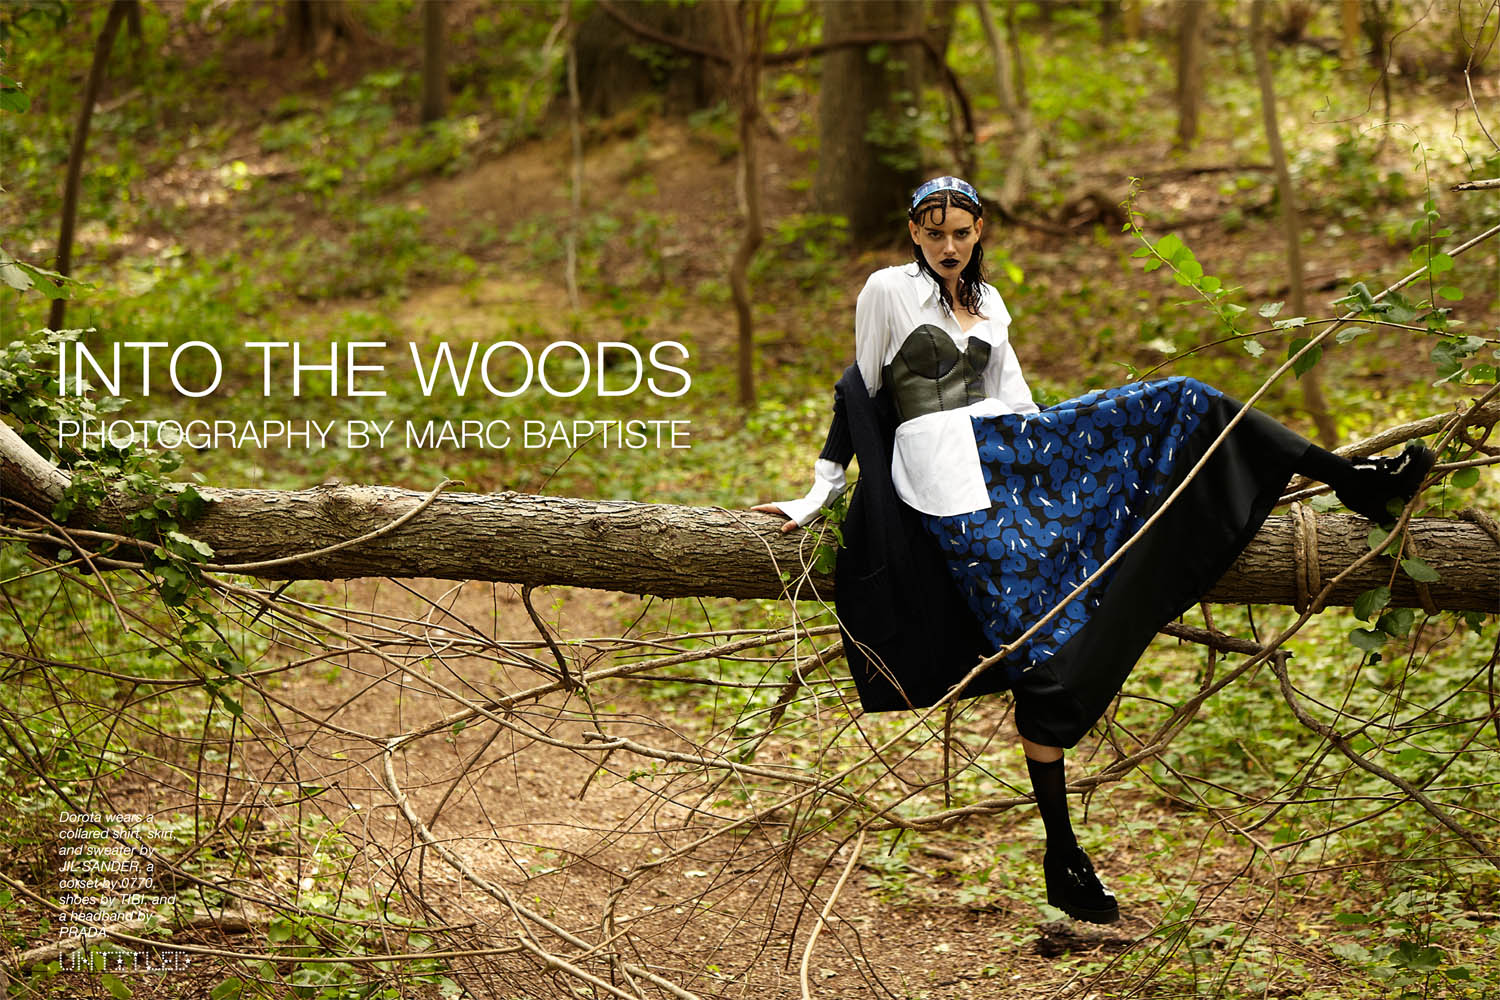 INTO THE WOODS - Photography by Marc Baptiste for The Untitled Magazine-1.jpg